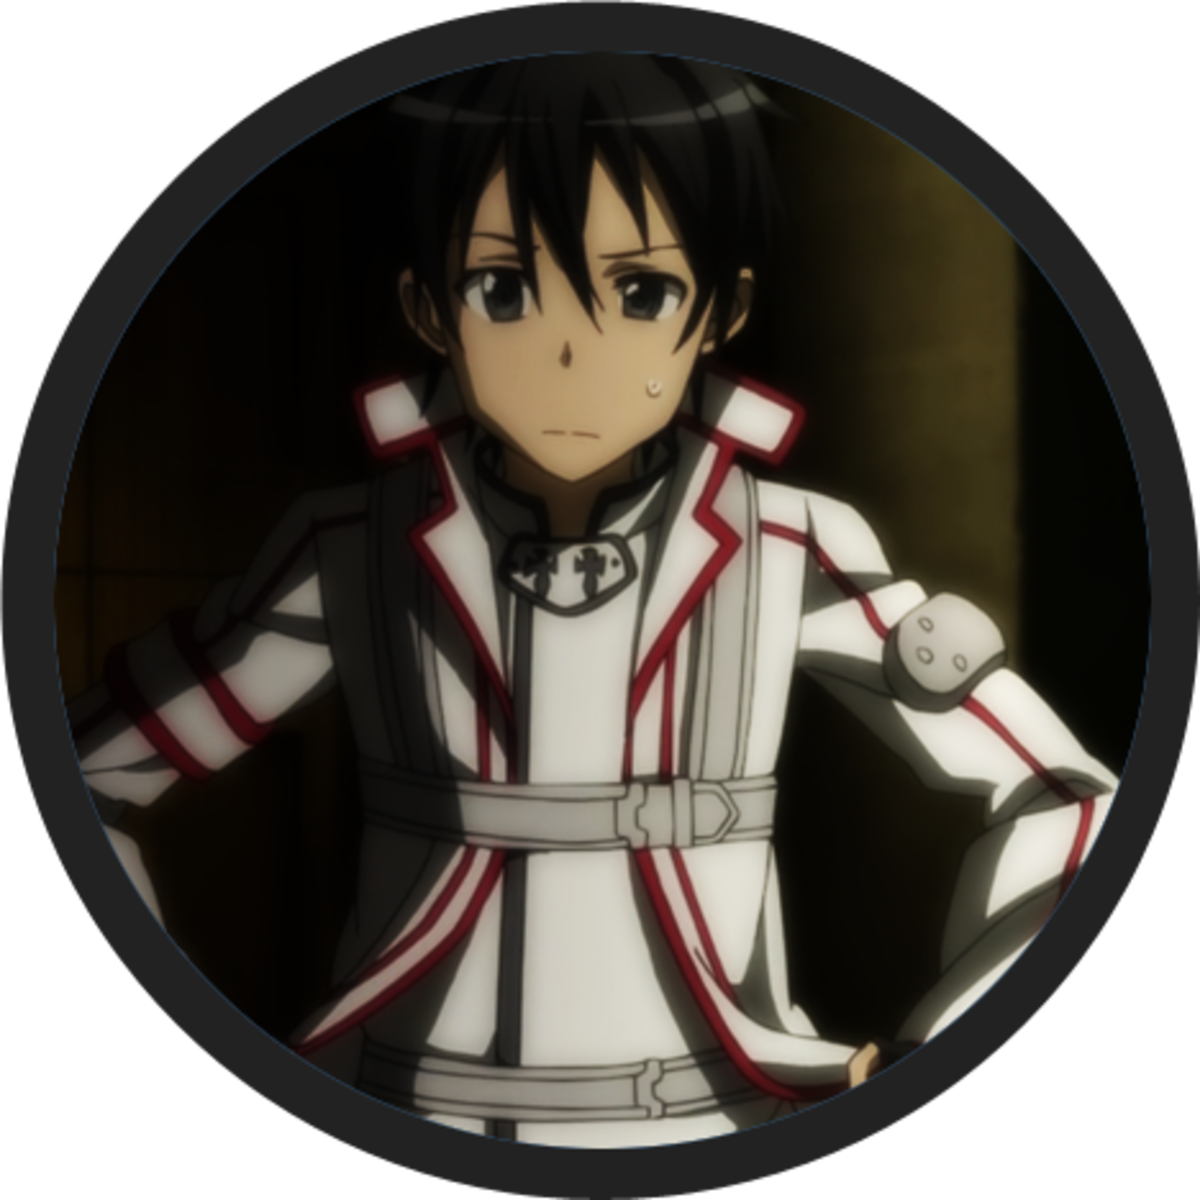 Kirito on Knights of the Blood uniform